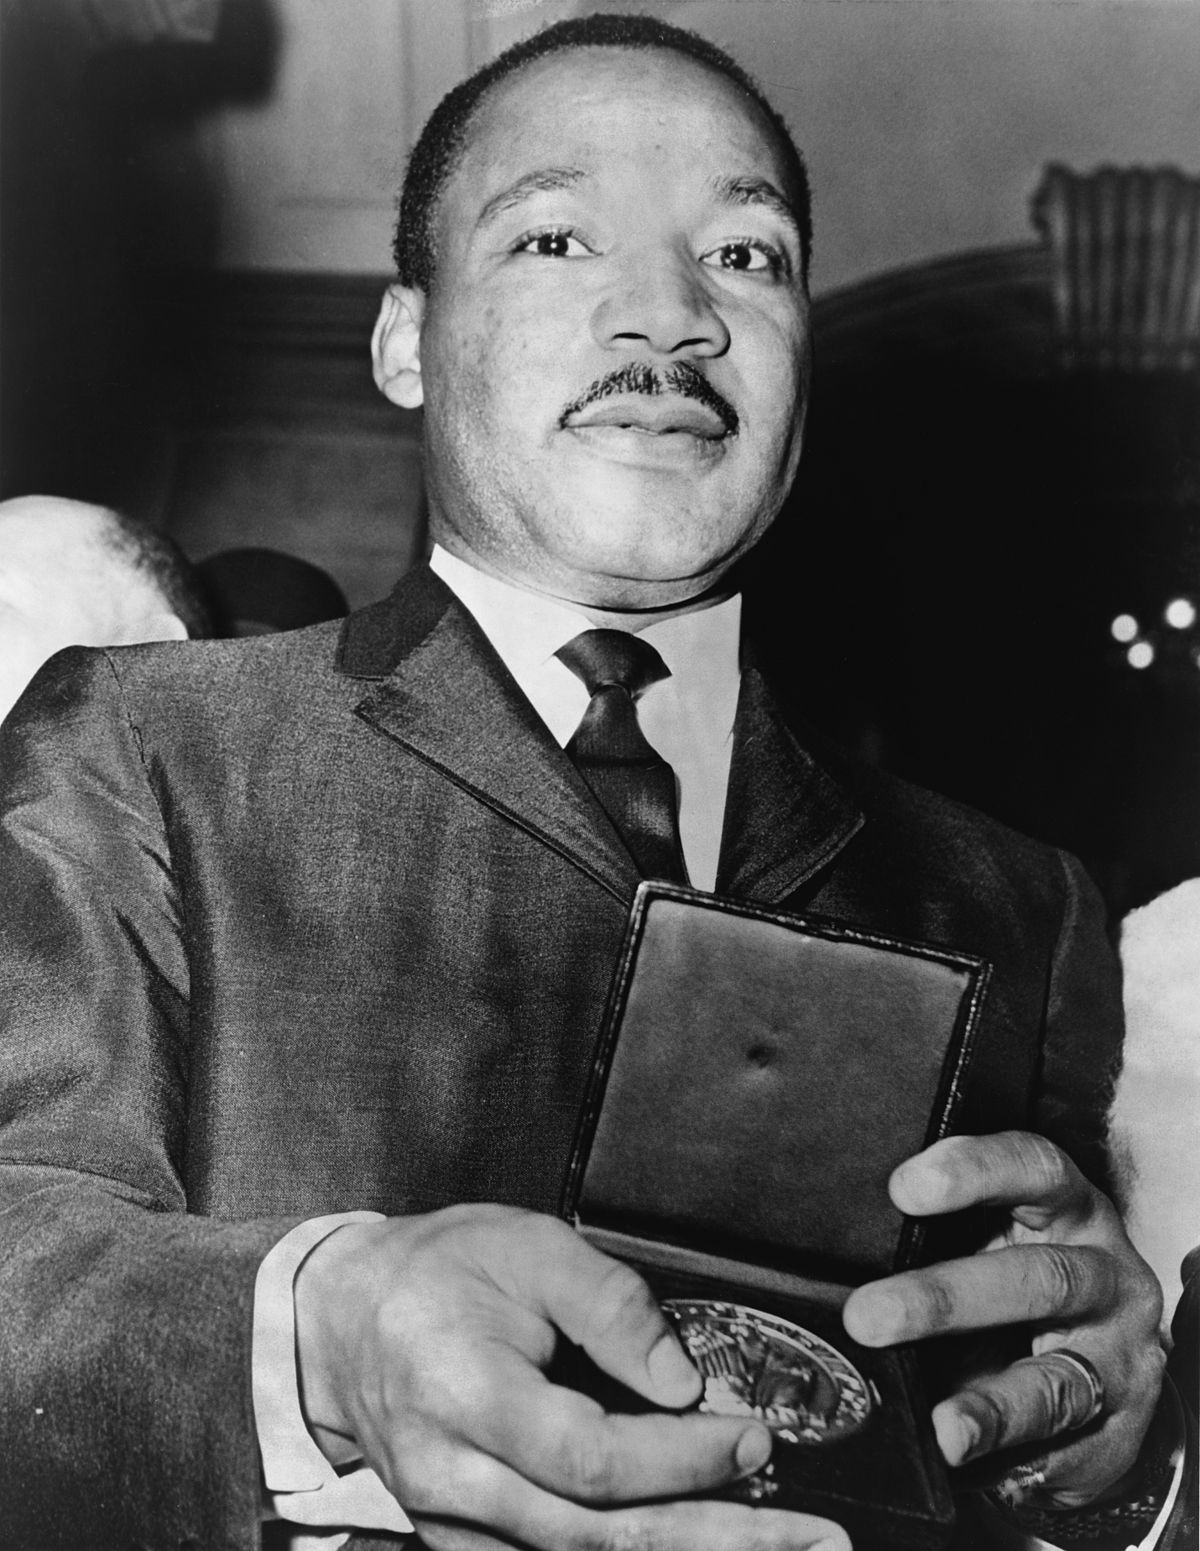 https://upload.wikimedia.org/wikipedia/commons/thumb/f/f6/Martin_Luther_King_Jr_with_medallion_NYWTS.jpg/1200px-Martin_Luther_King_Jr_with_medallion_NYWTS.jpg